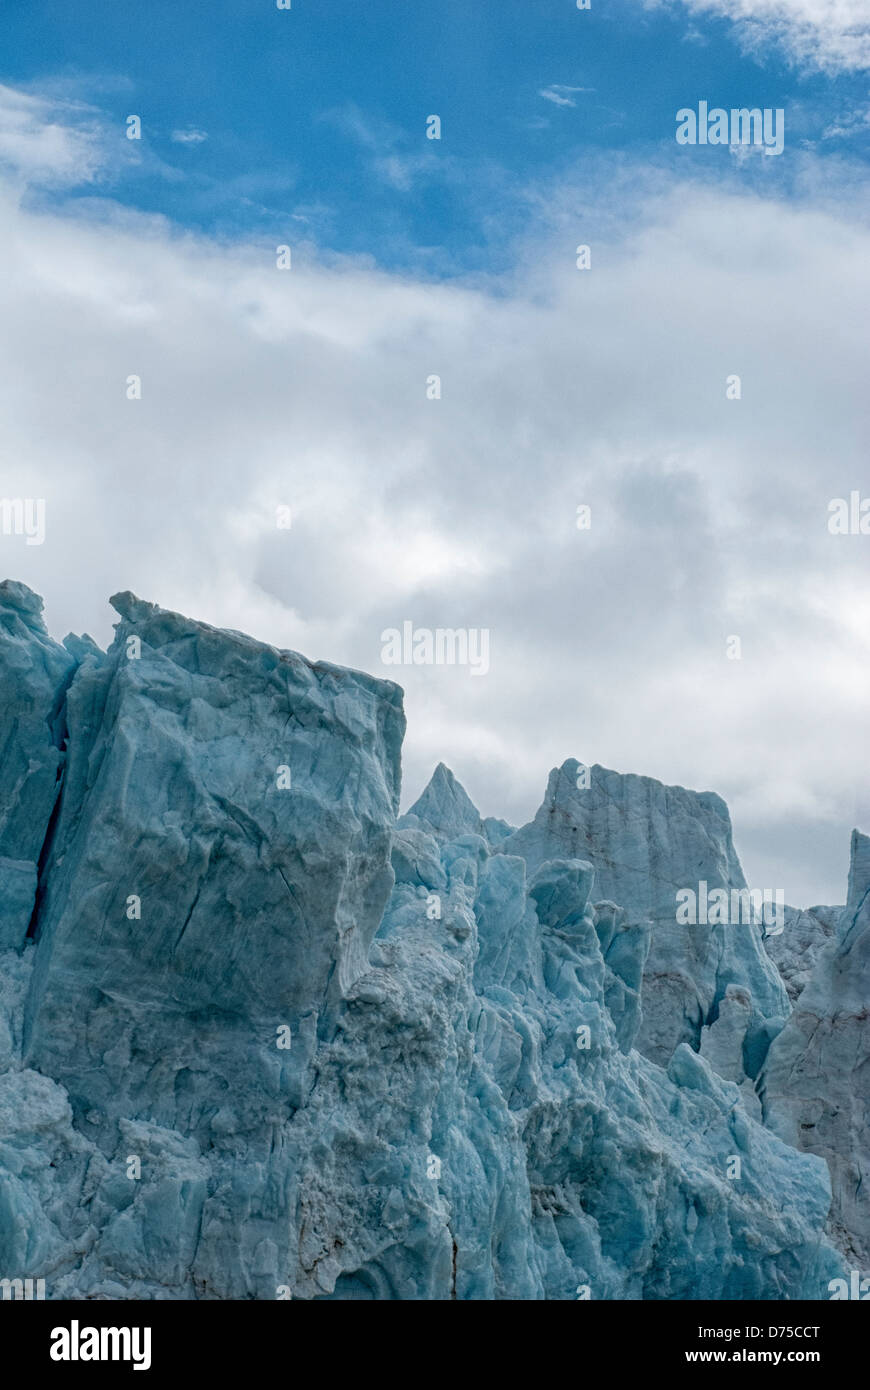 face-of-the-14-july-glacier-krossfjord-s